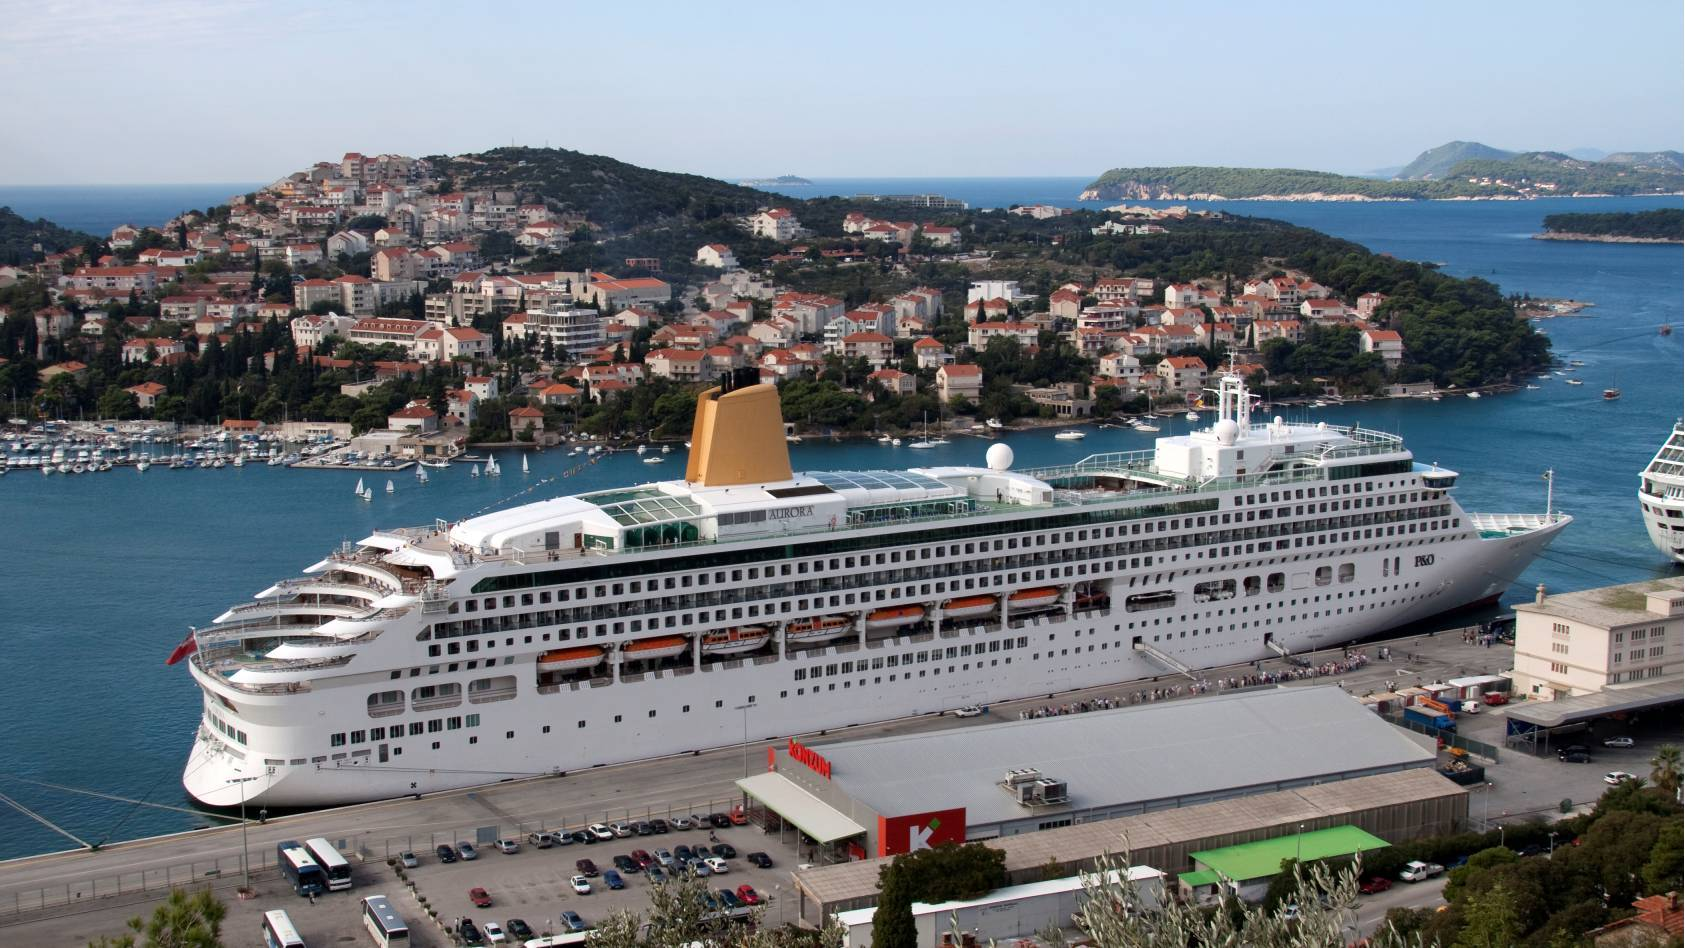 Cruise tourism in Croatia blossoms